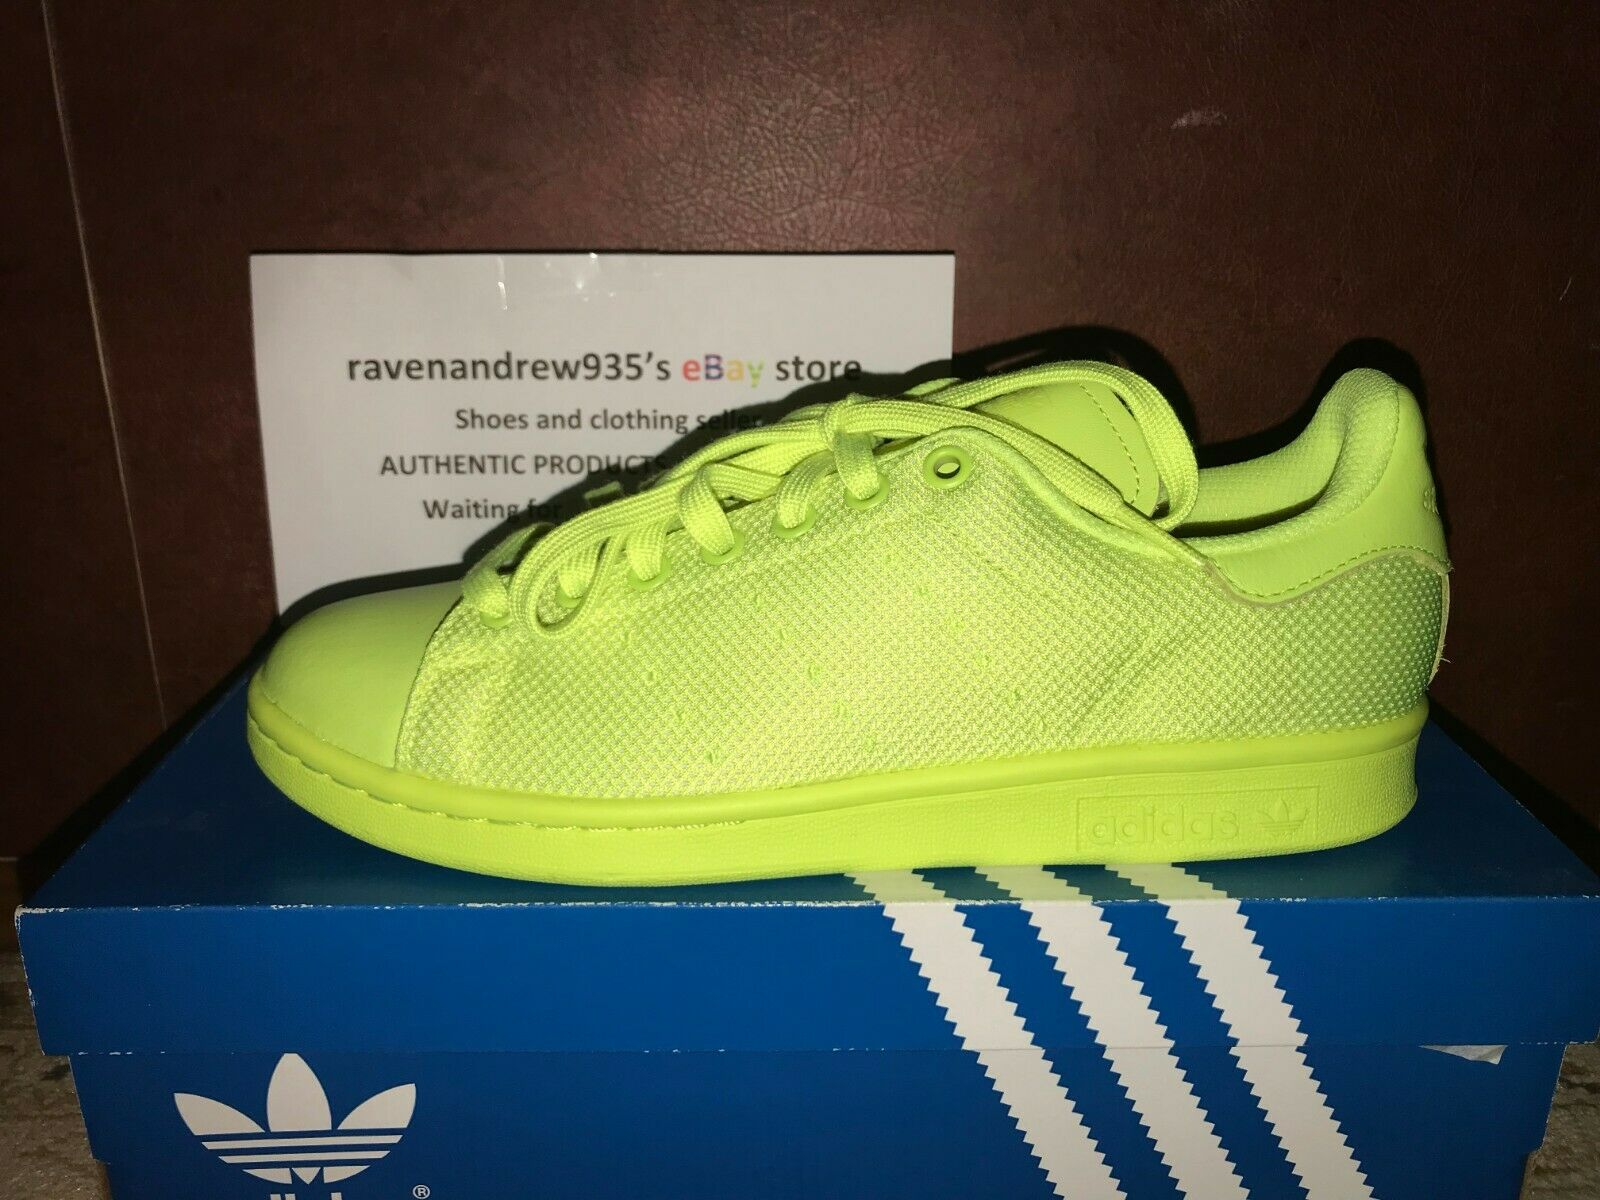 NEW ADIDAS ORIGINALS STAN SMITH Solar YELLOW Sneakers SHOES US 7.5 BB4996